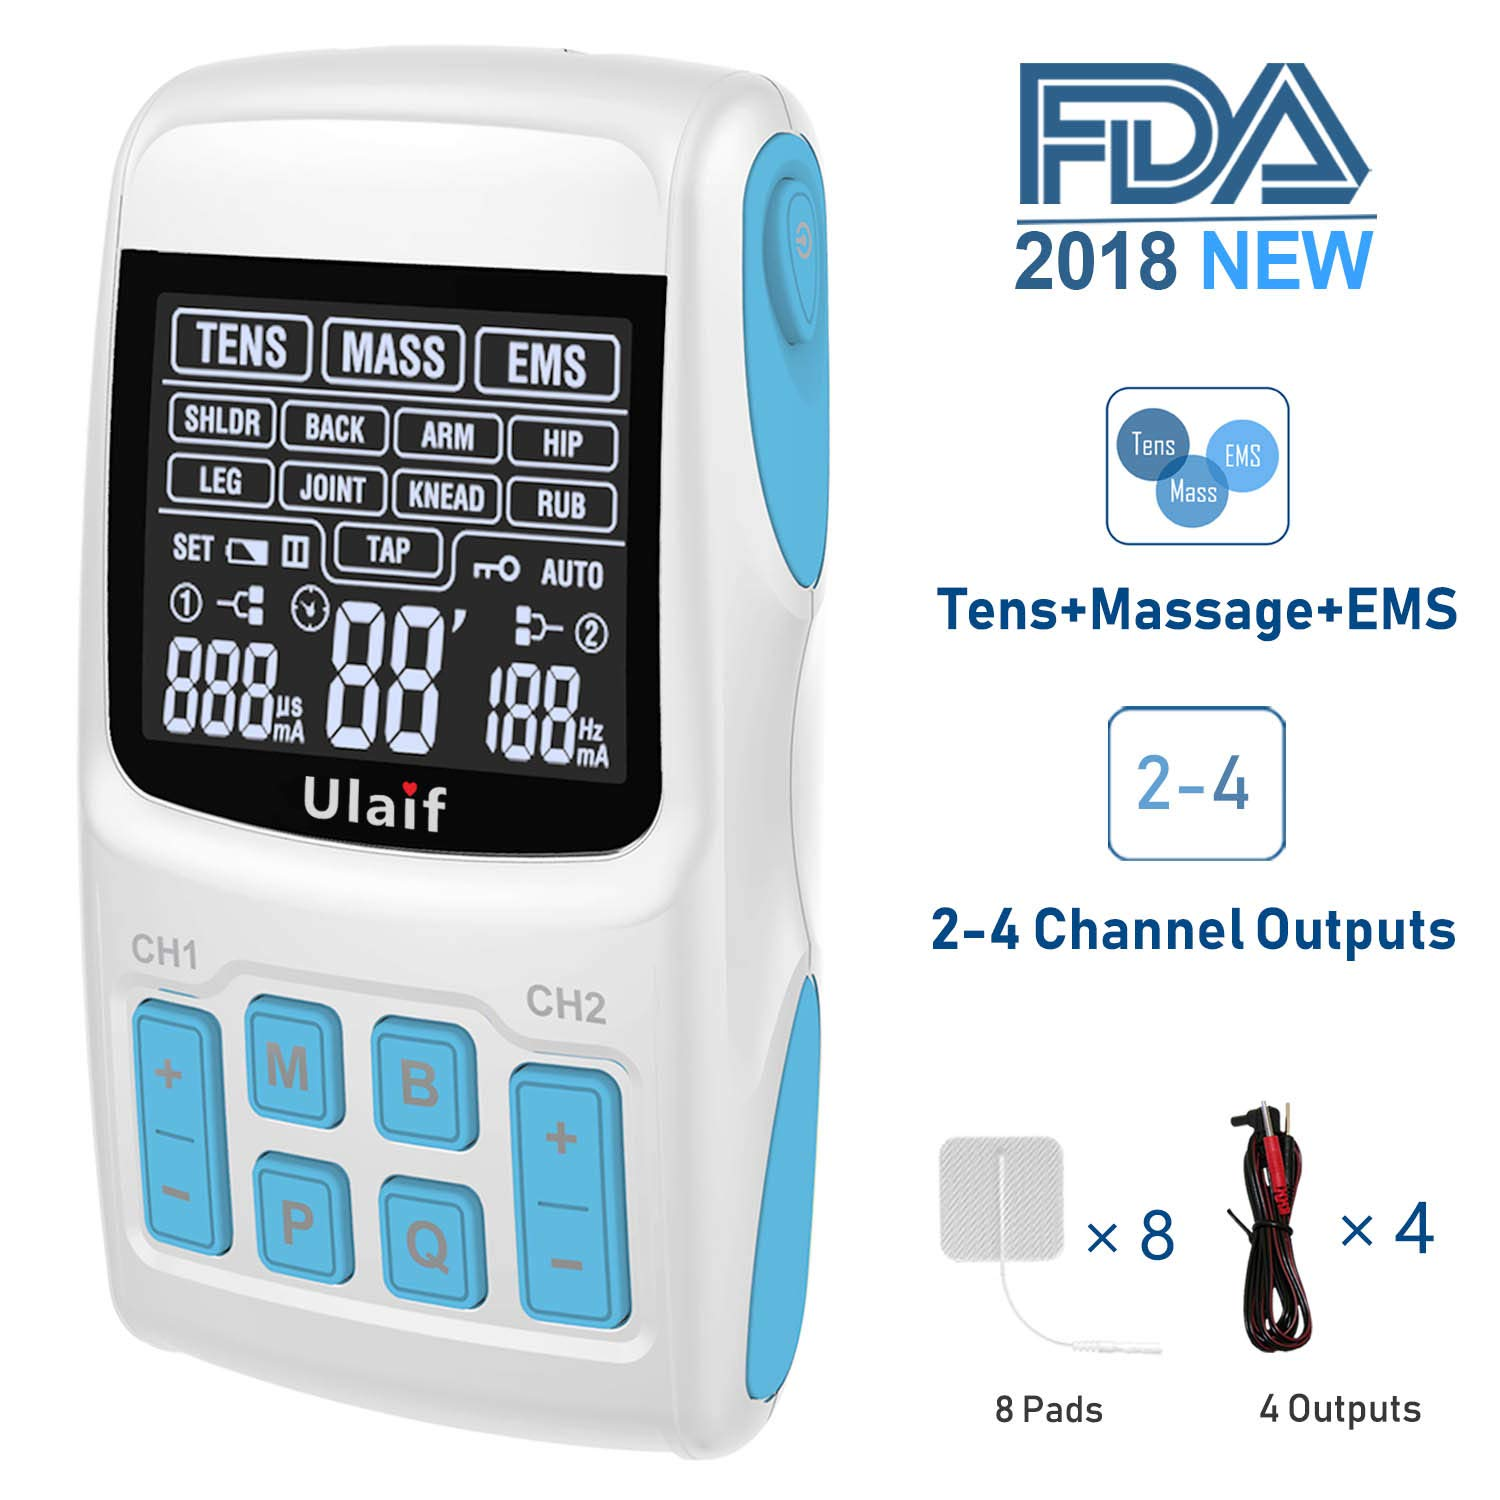 TENS Unit+EMS Muscle Stimulator+ Pulse Massager 3-in-1 Combination, Ulaif 2018 New FDA Approved, 36 Modes for Pain Relief & Muscle Strength, 2-4 Channels Output,8 Long Life Pads